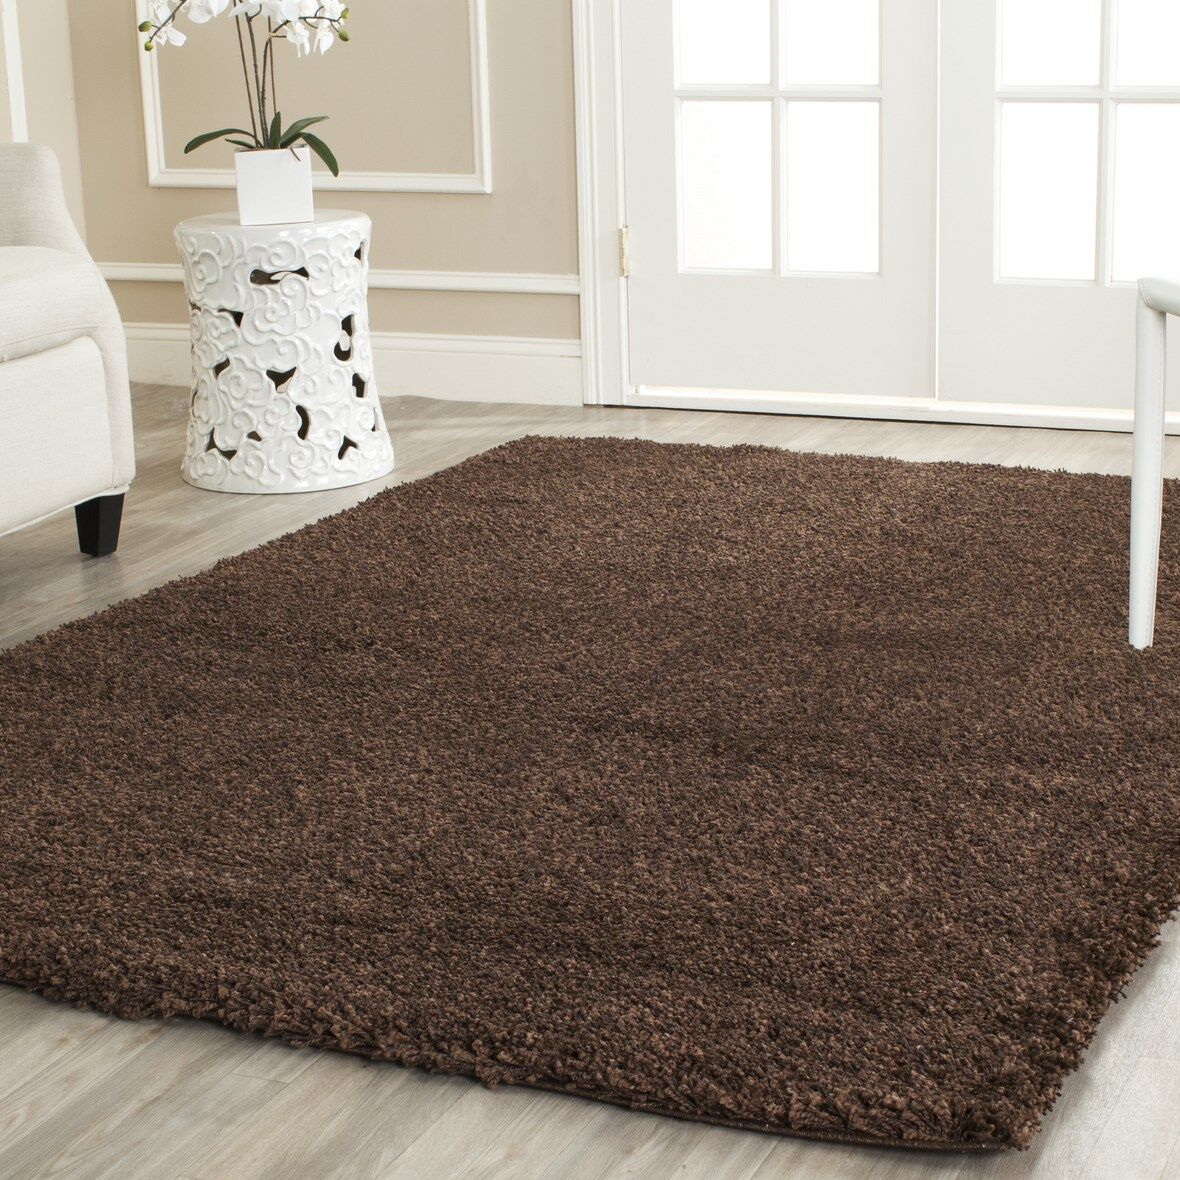 Rowen Brown Area Rug Rug Size: Rectangle 11' x 15'